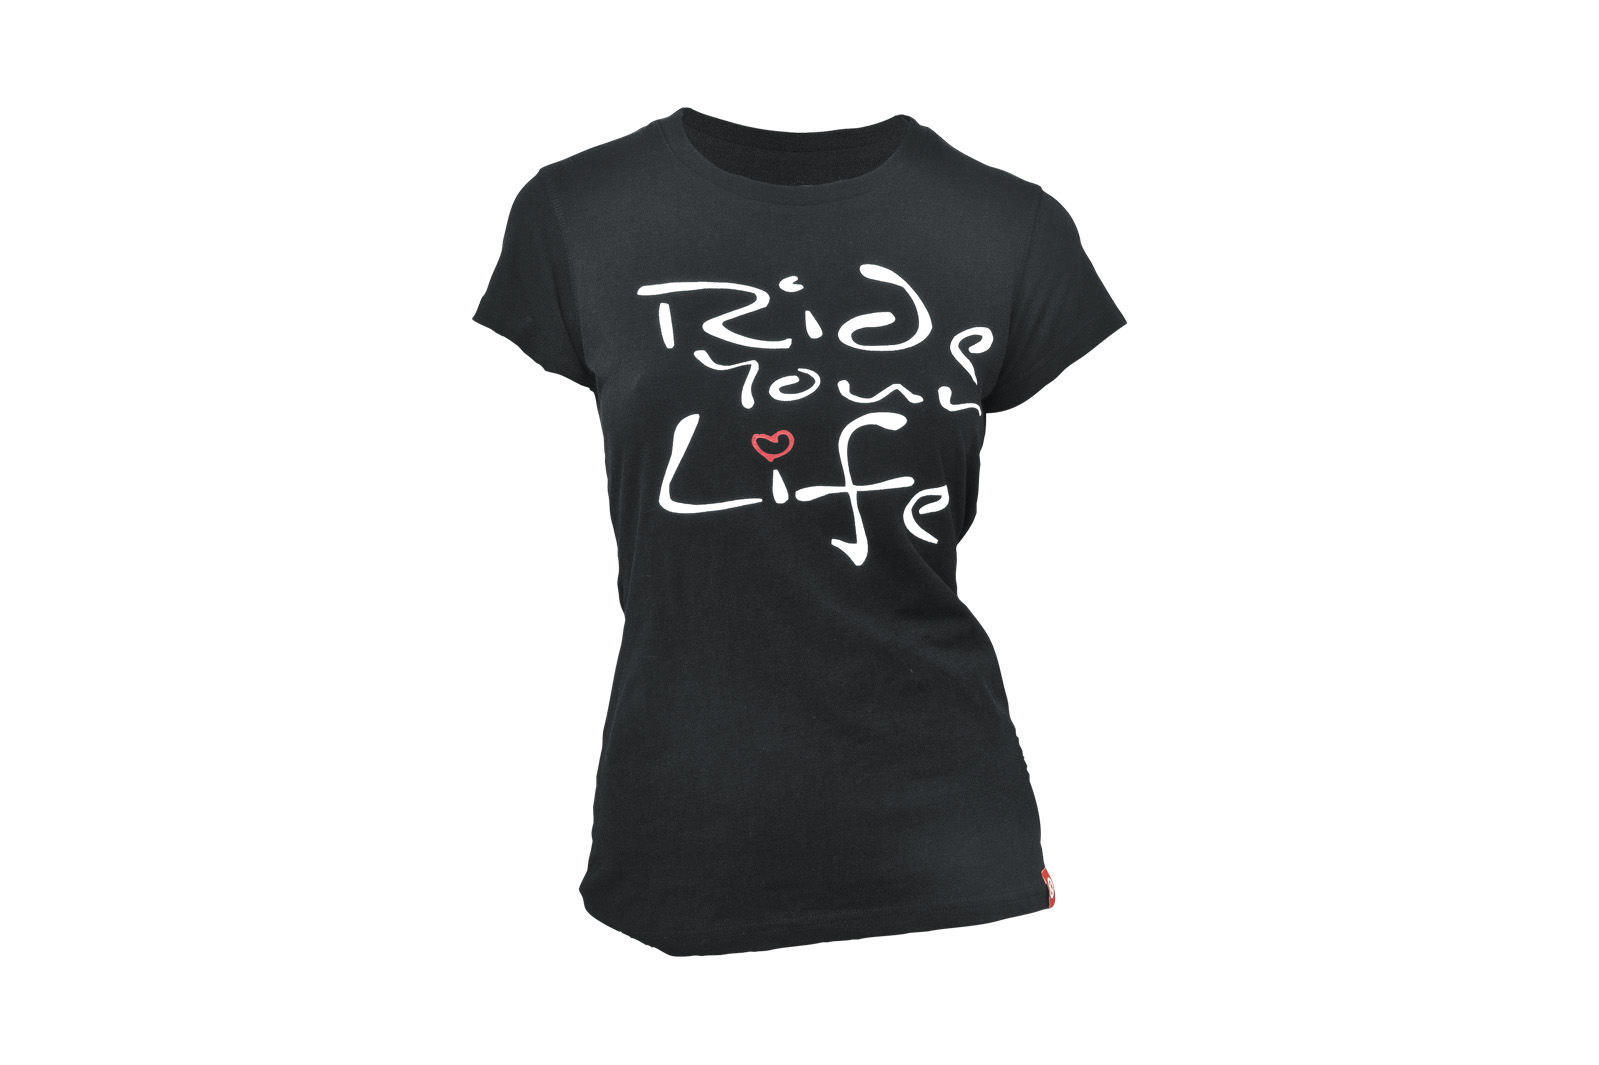 T-Shirt KELLYS WOMEN´S RIDE YOUR LIFE kurzarm Black - L - Fahrradhaus Haske